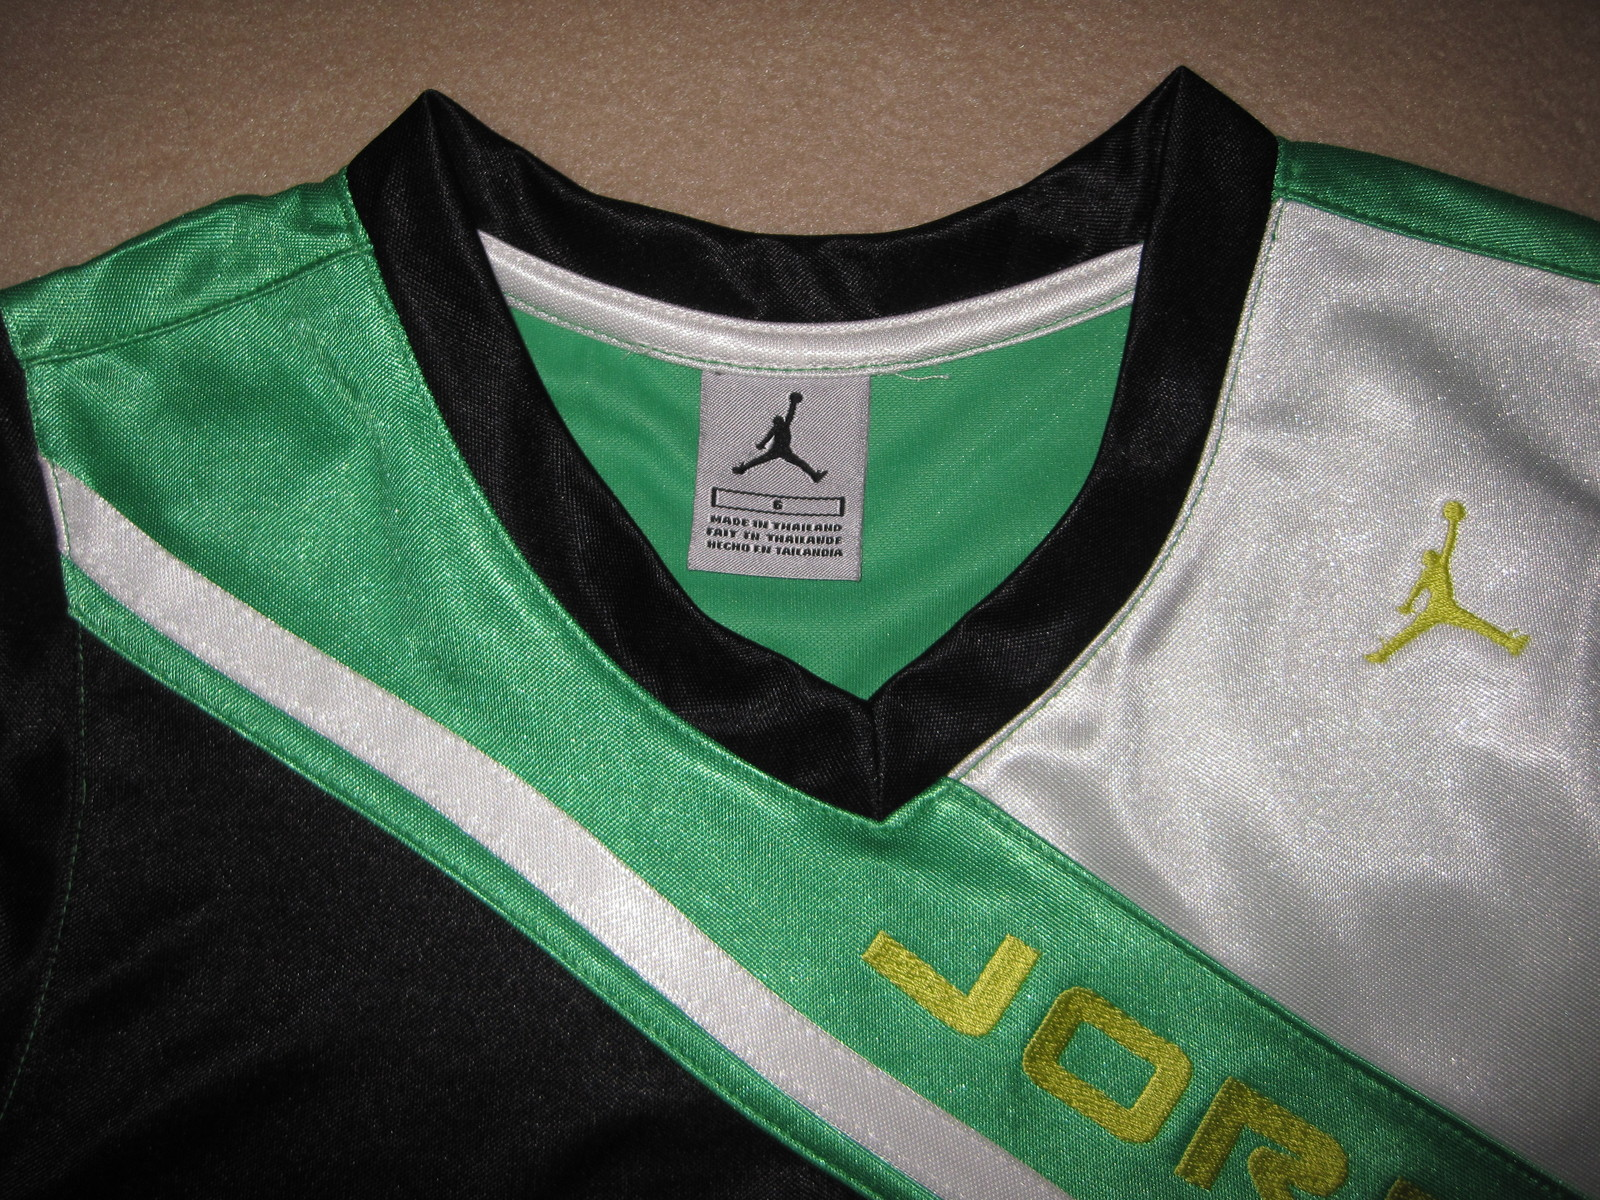 BOYS 7 - Nike - Micheal Jordan Jumpman 23 Black-Green-White BASKETBALL JERSEY